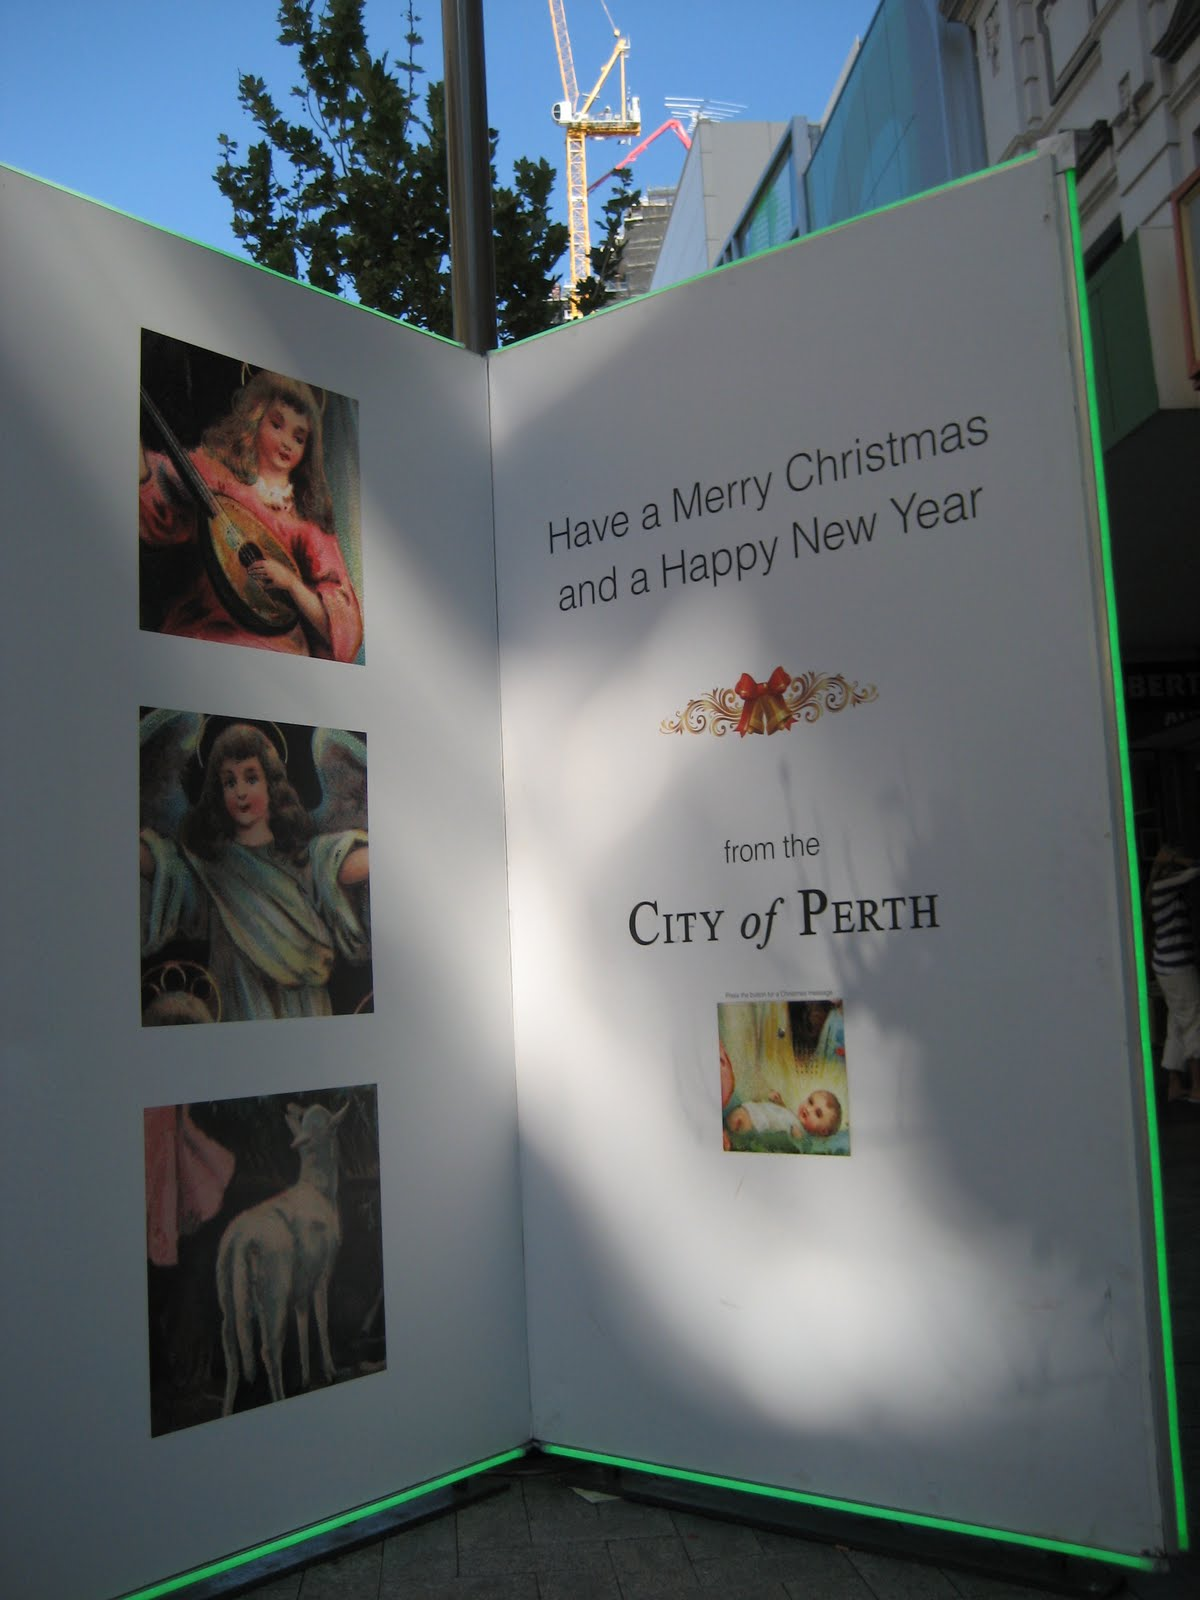 Huge Christmas Card.The Abbotts On Vacation Flat Mrs Abbott Visits Perth City